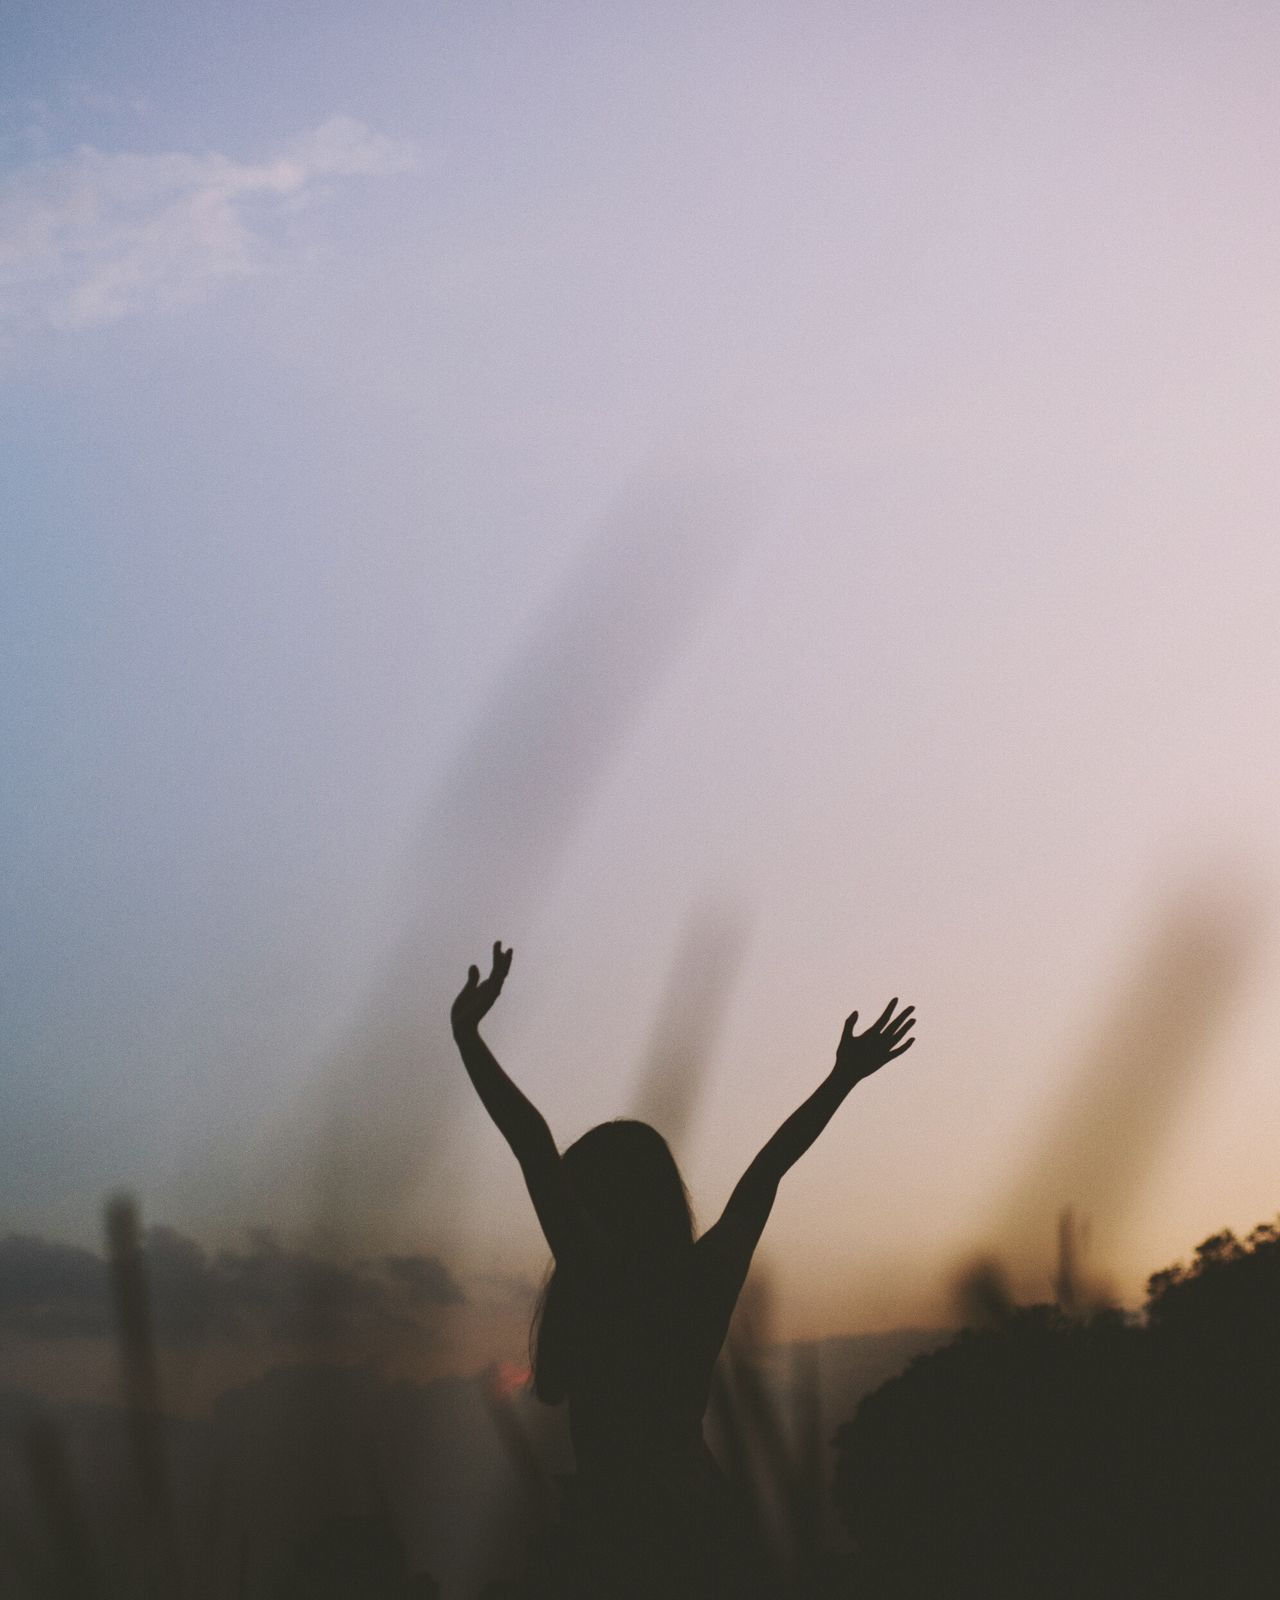 Silhouette of woman with arms raised against sky